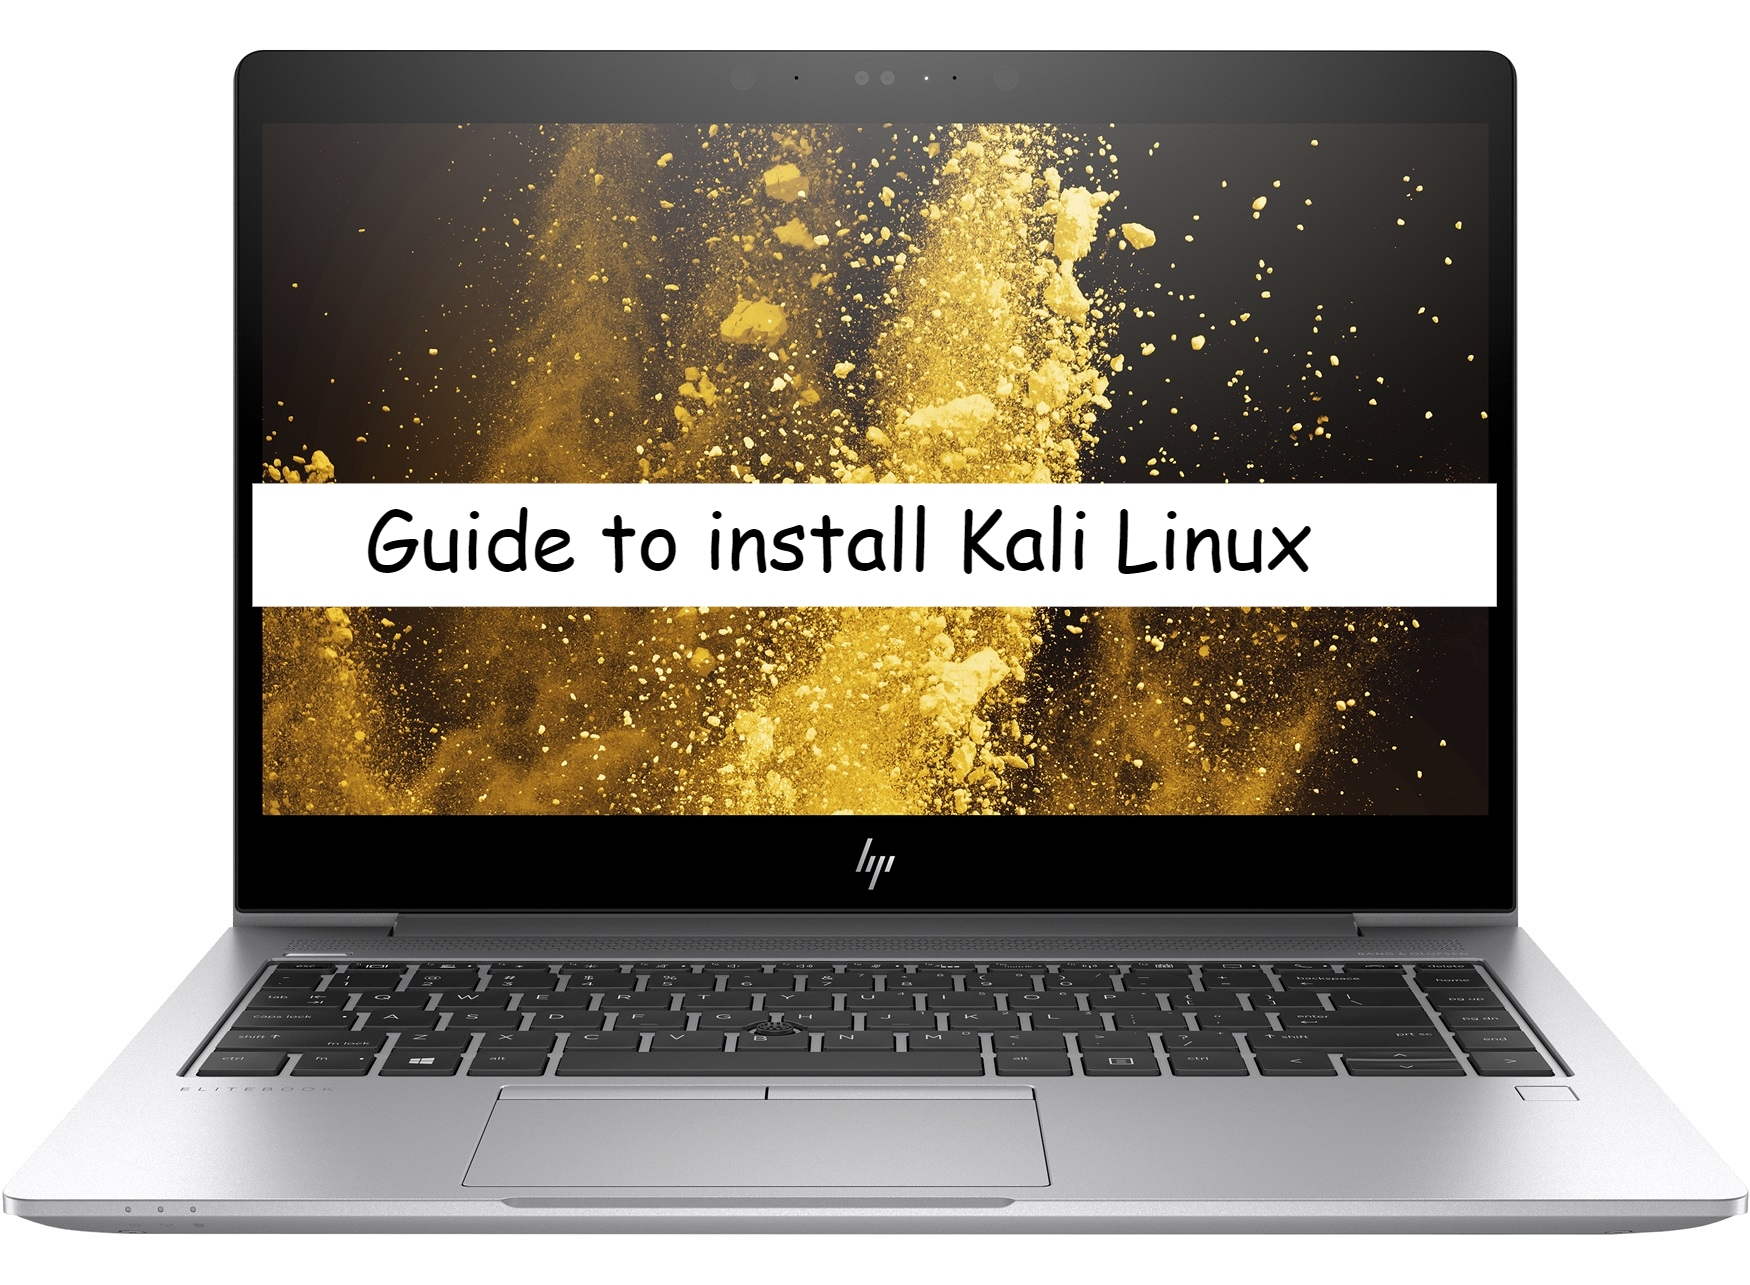 HP Elitebook 840 Kali Linux